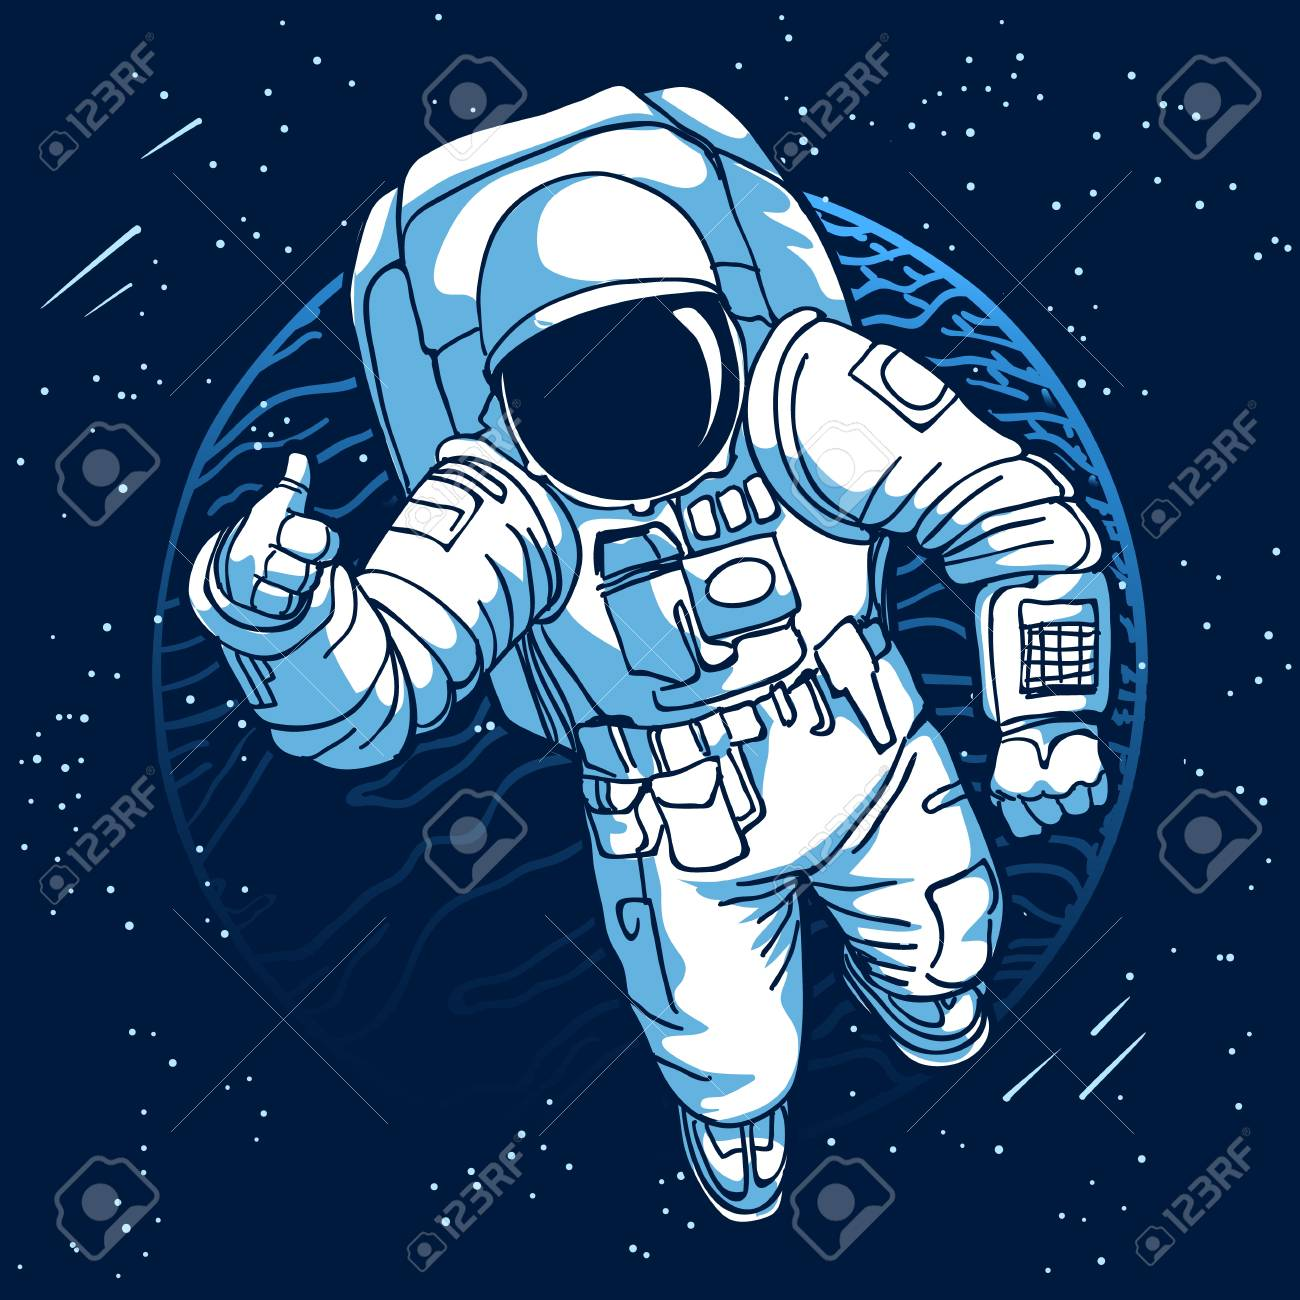 Astronaut. Spaceman in space on moon or earth planet background vector illustration - 110263122